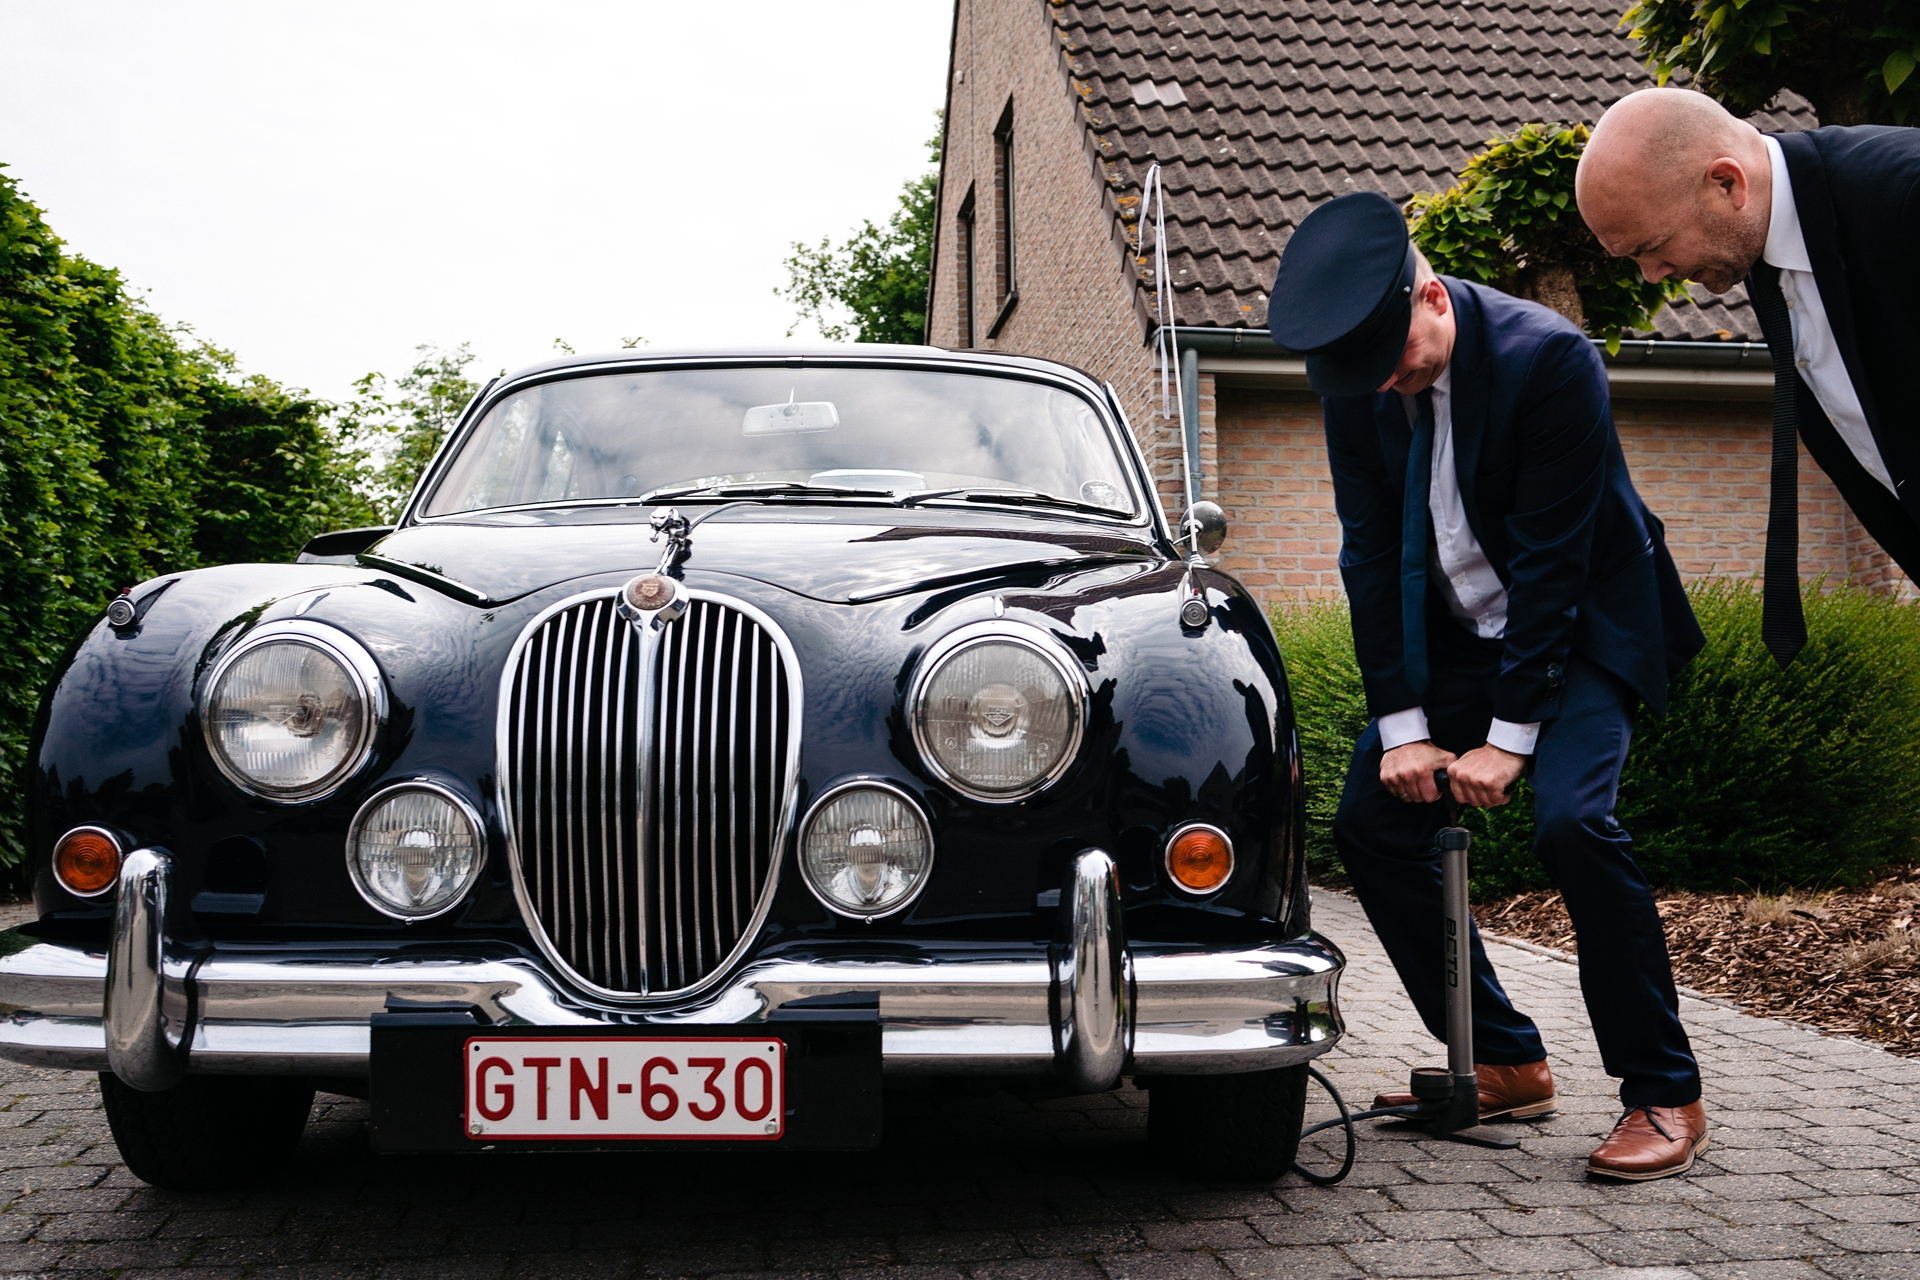 Wedding Photographer captured this image of the driver of the ceremonial car has a flat tire right before the couple needs to leave - Stressful moments wedding photography